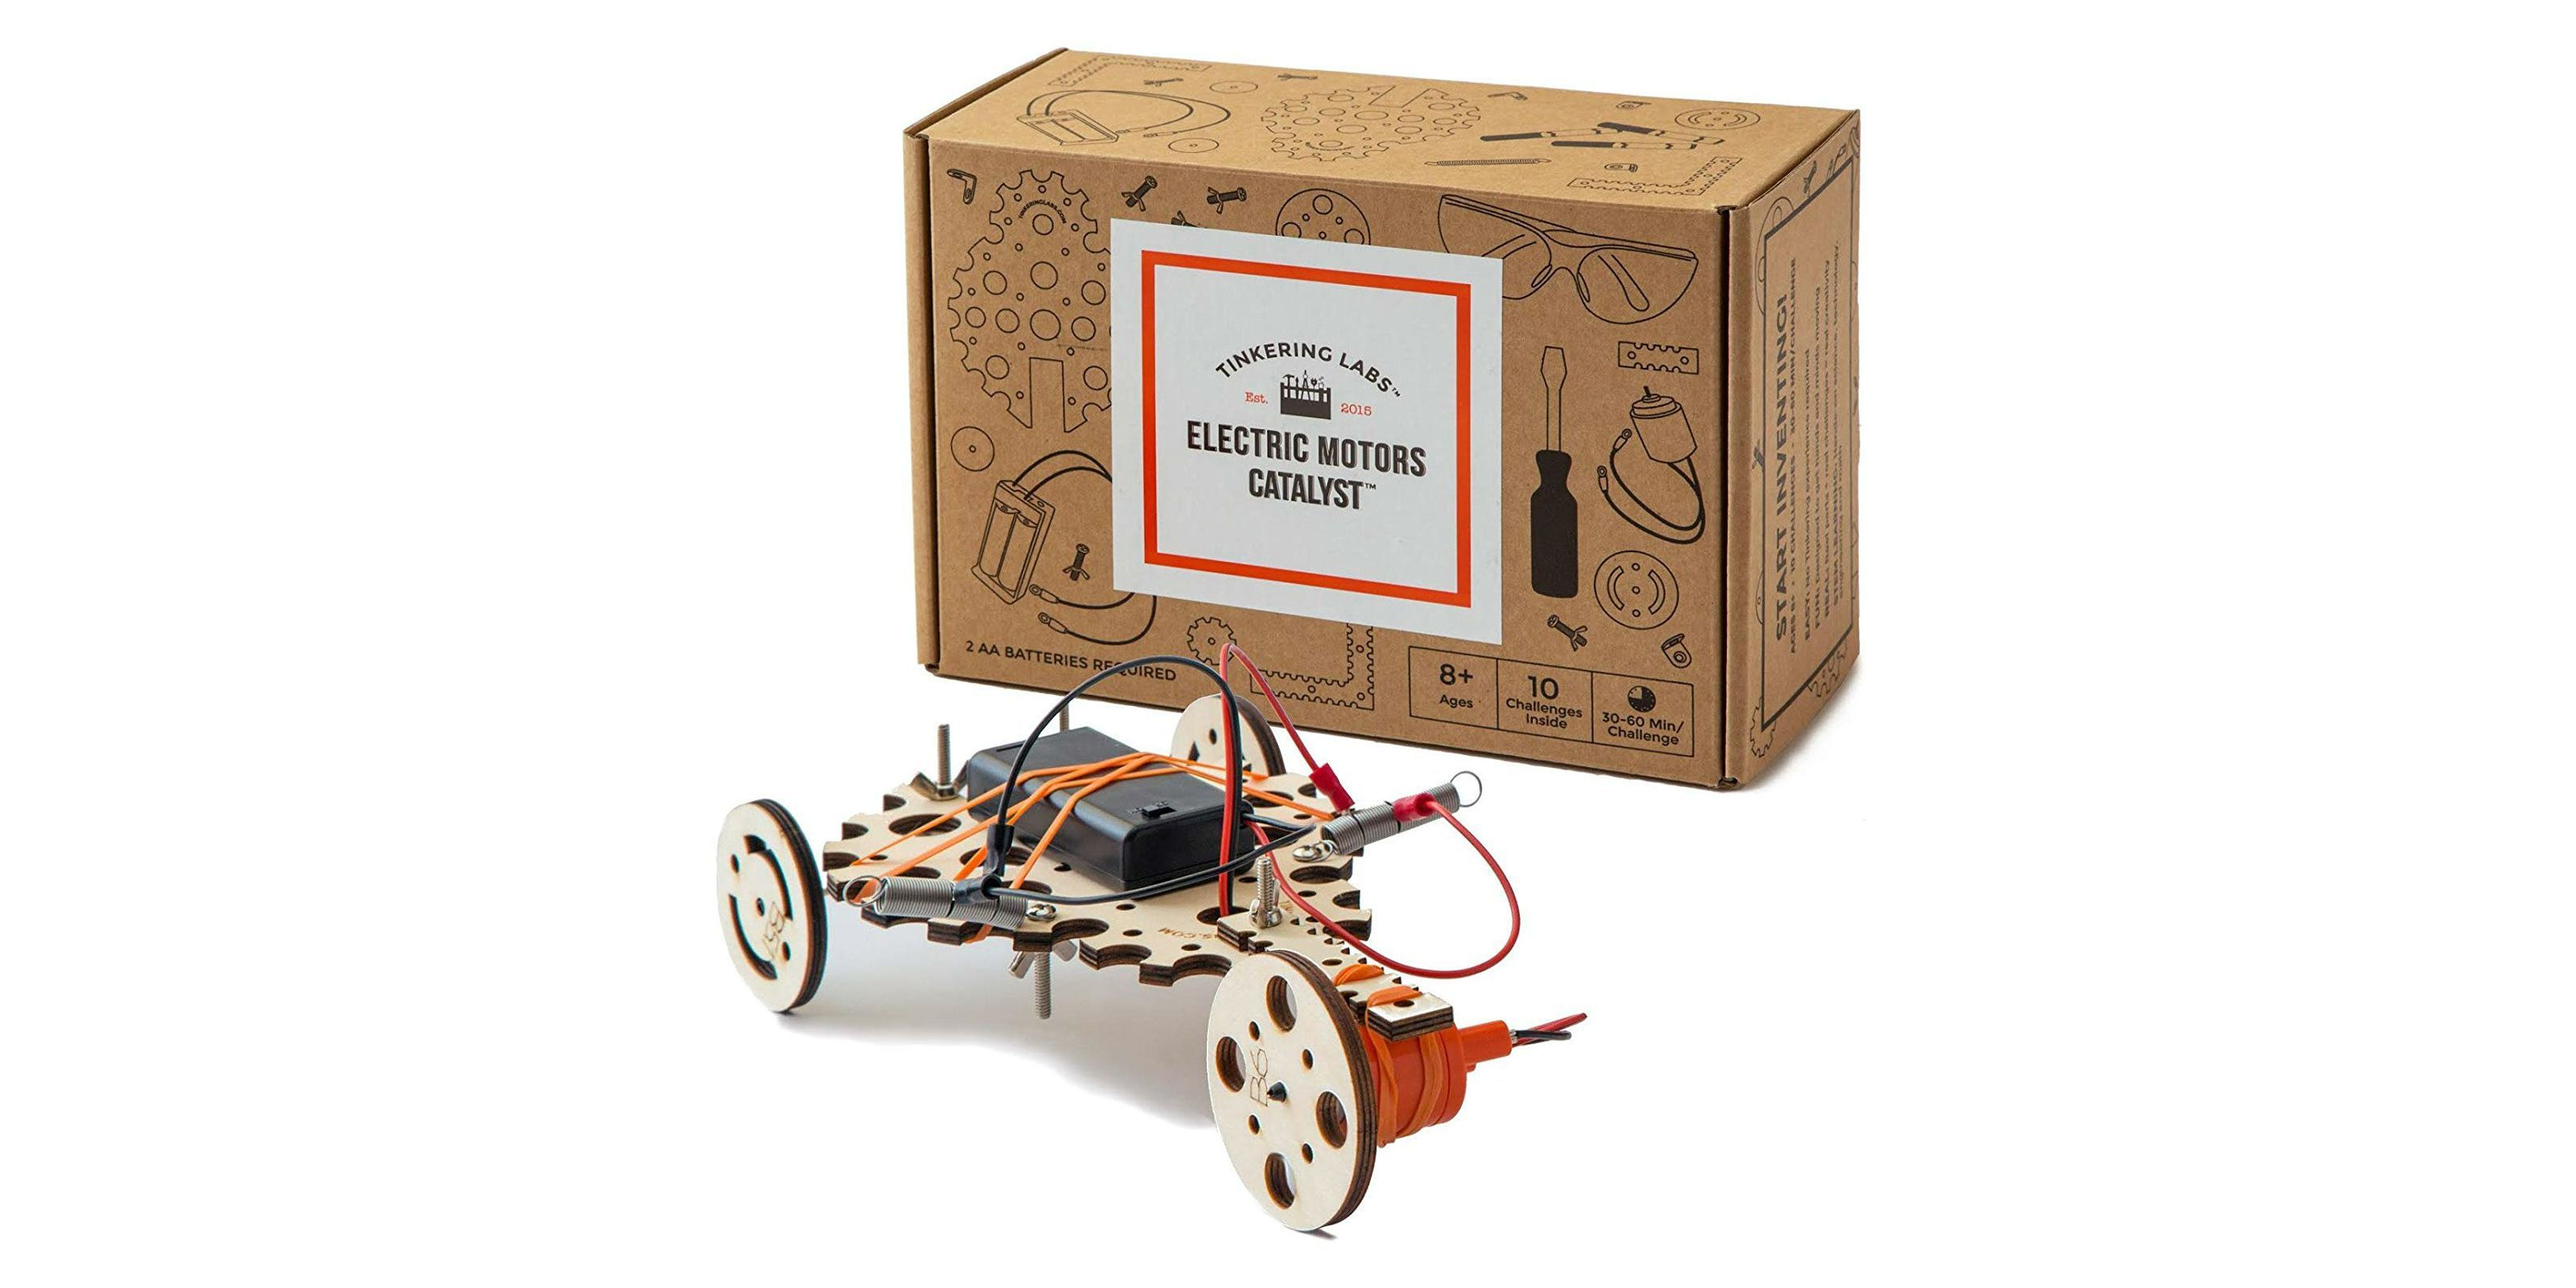 Robot Kits For Kids Cool Gifts Electric Electronics Project Lab 300 In 1 Electronic